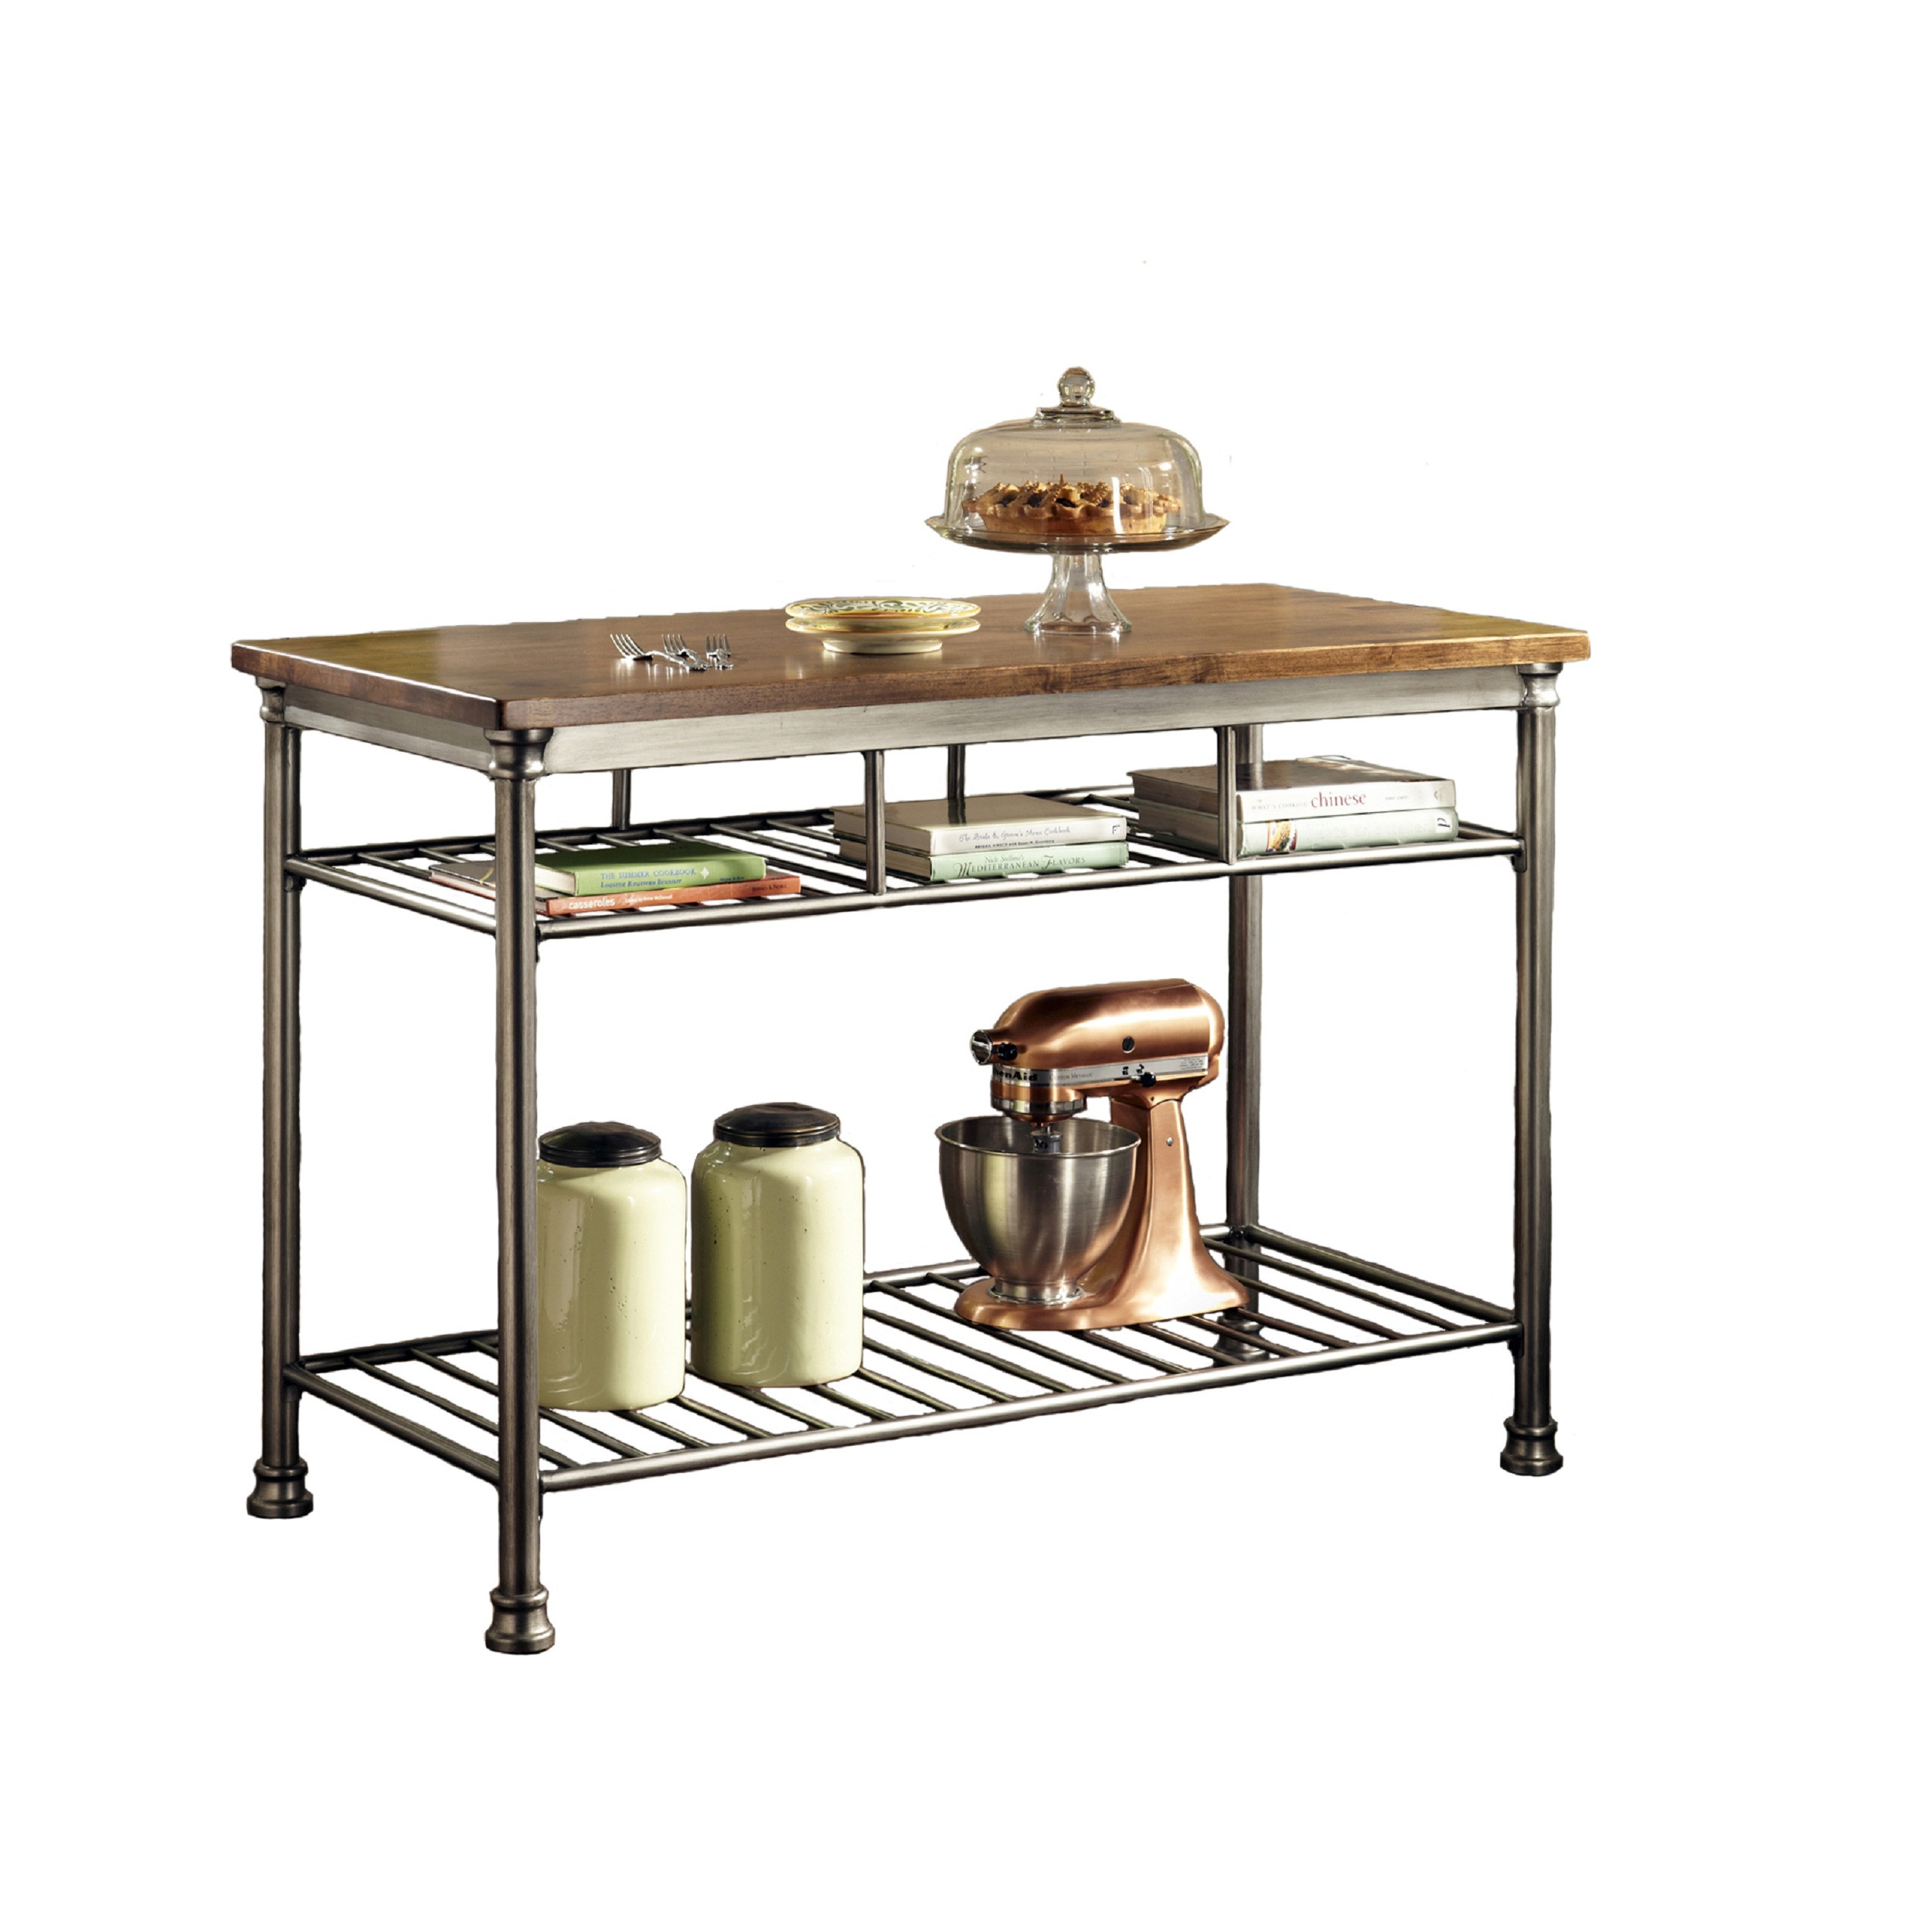 Home Styles Orleans Wire Rack Kitchen Island With Caramel Butcher Block Top,